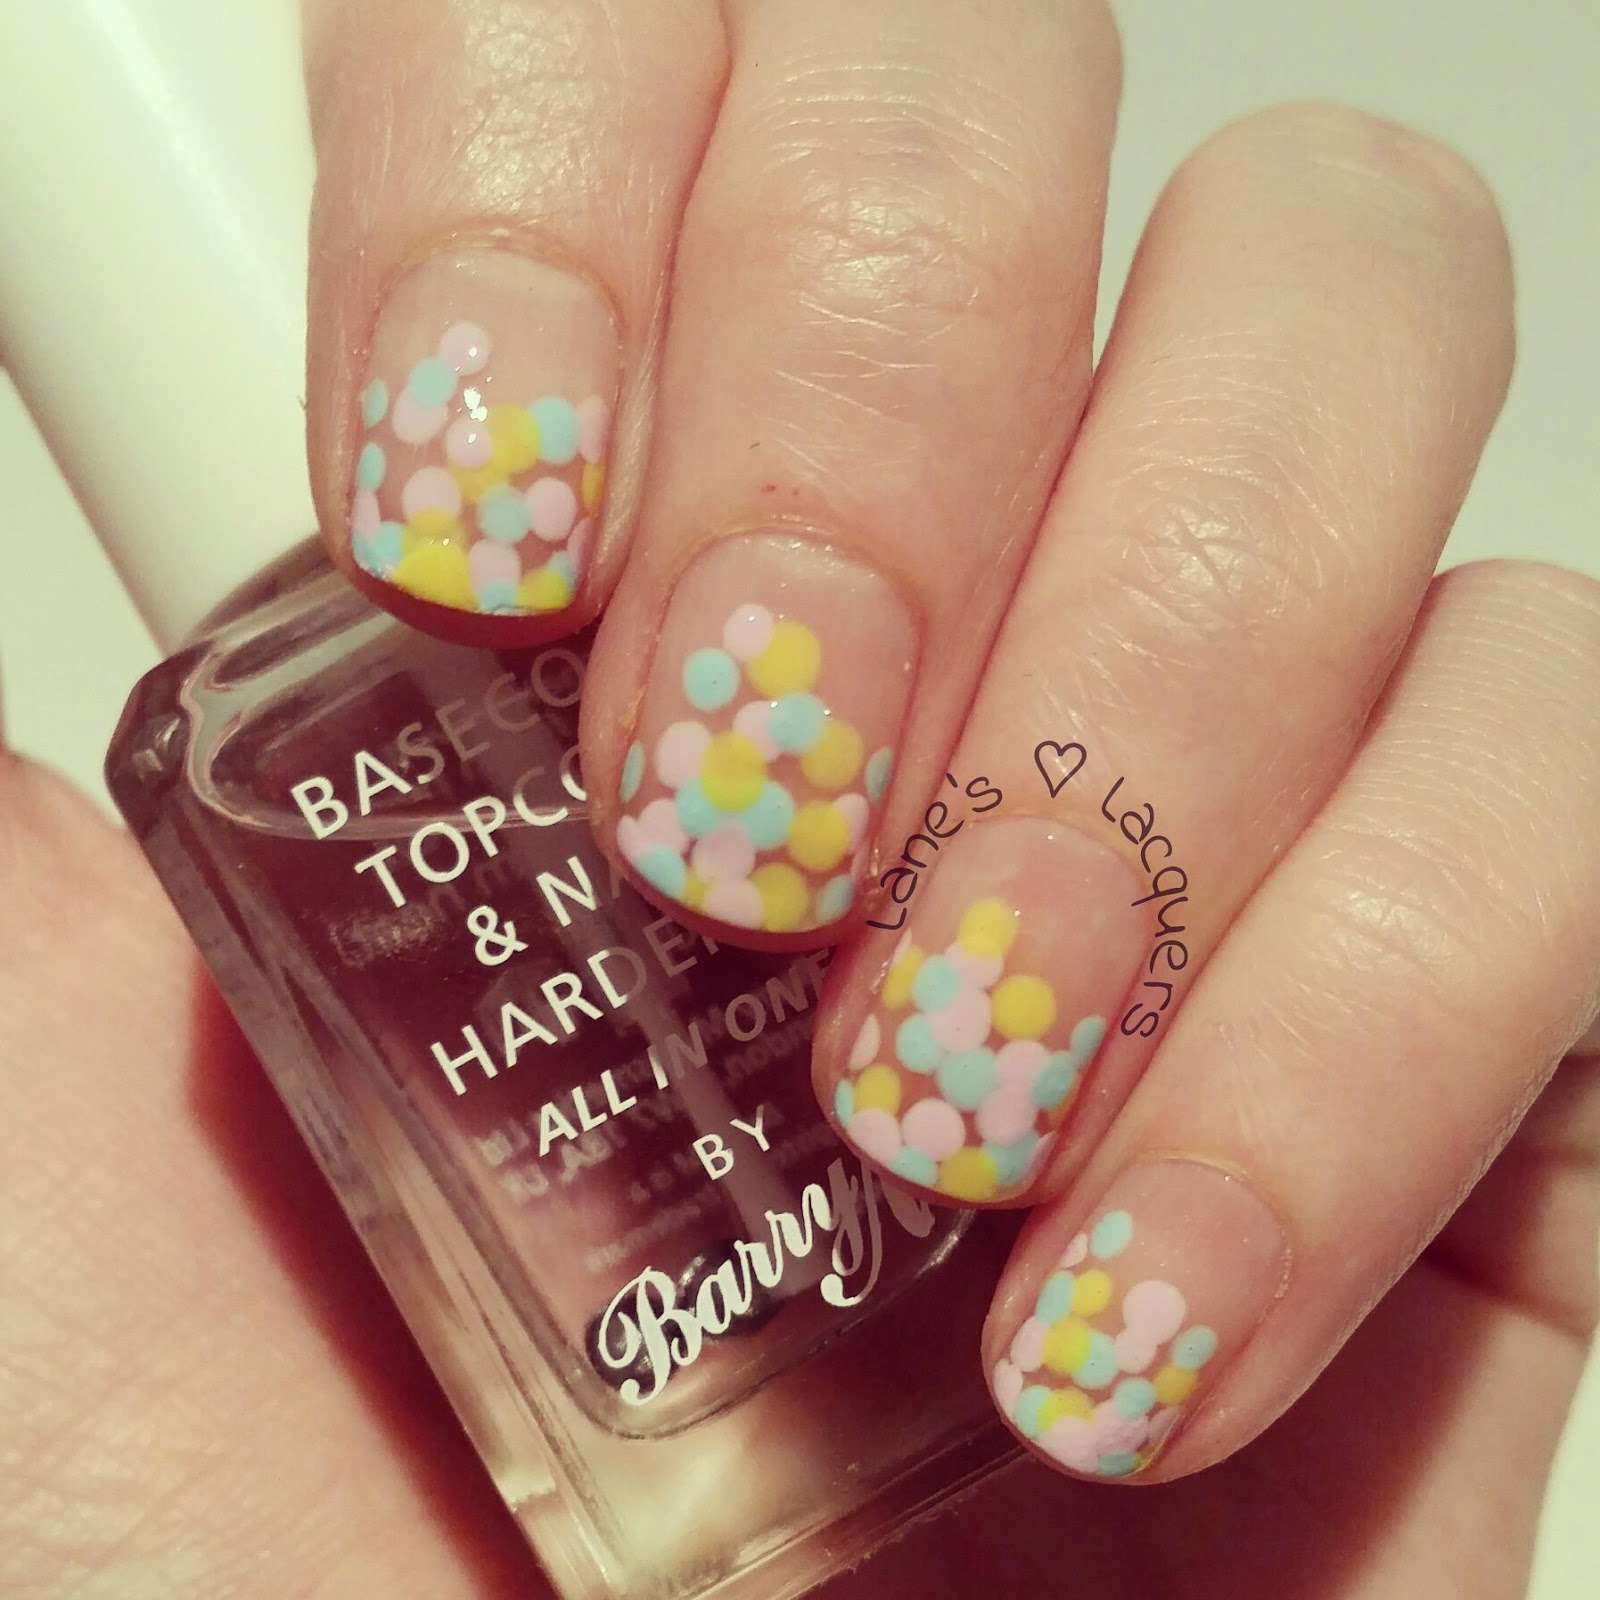 barry-m-negative-space-pastel-dotticure-nail-art (2)